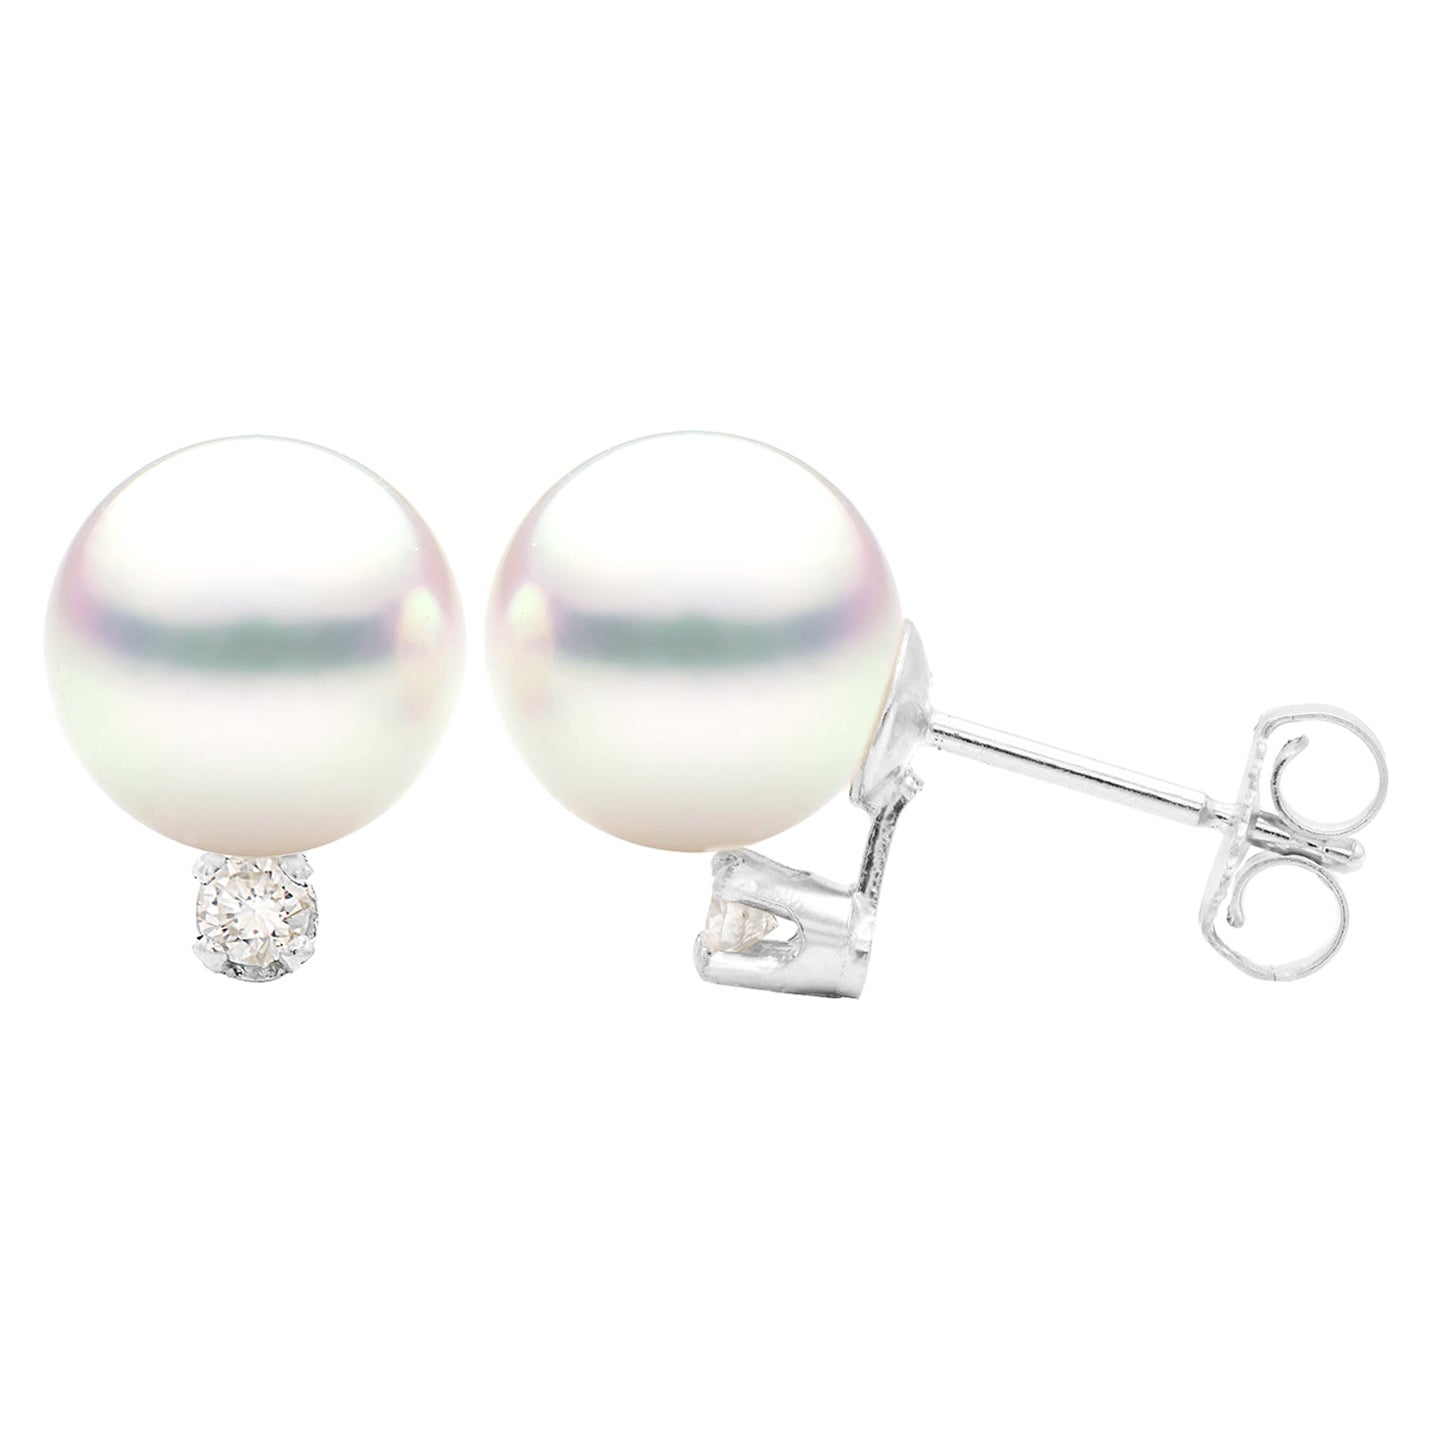 8-8.5mm White Cultured Pearl Stud Earring with Diamond in 14 Karat White Gold